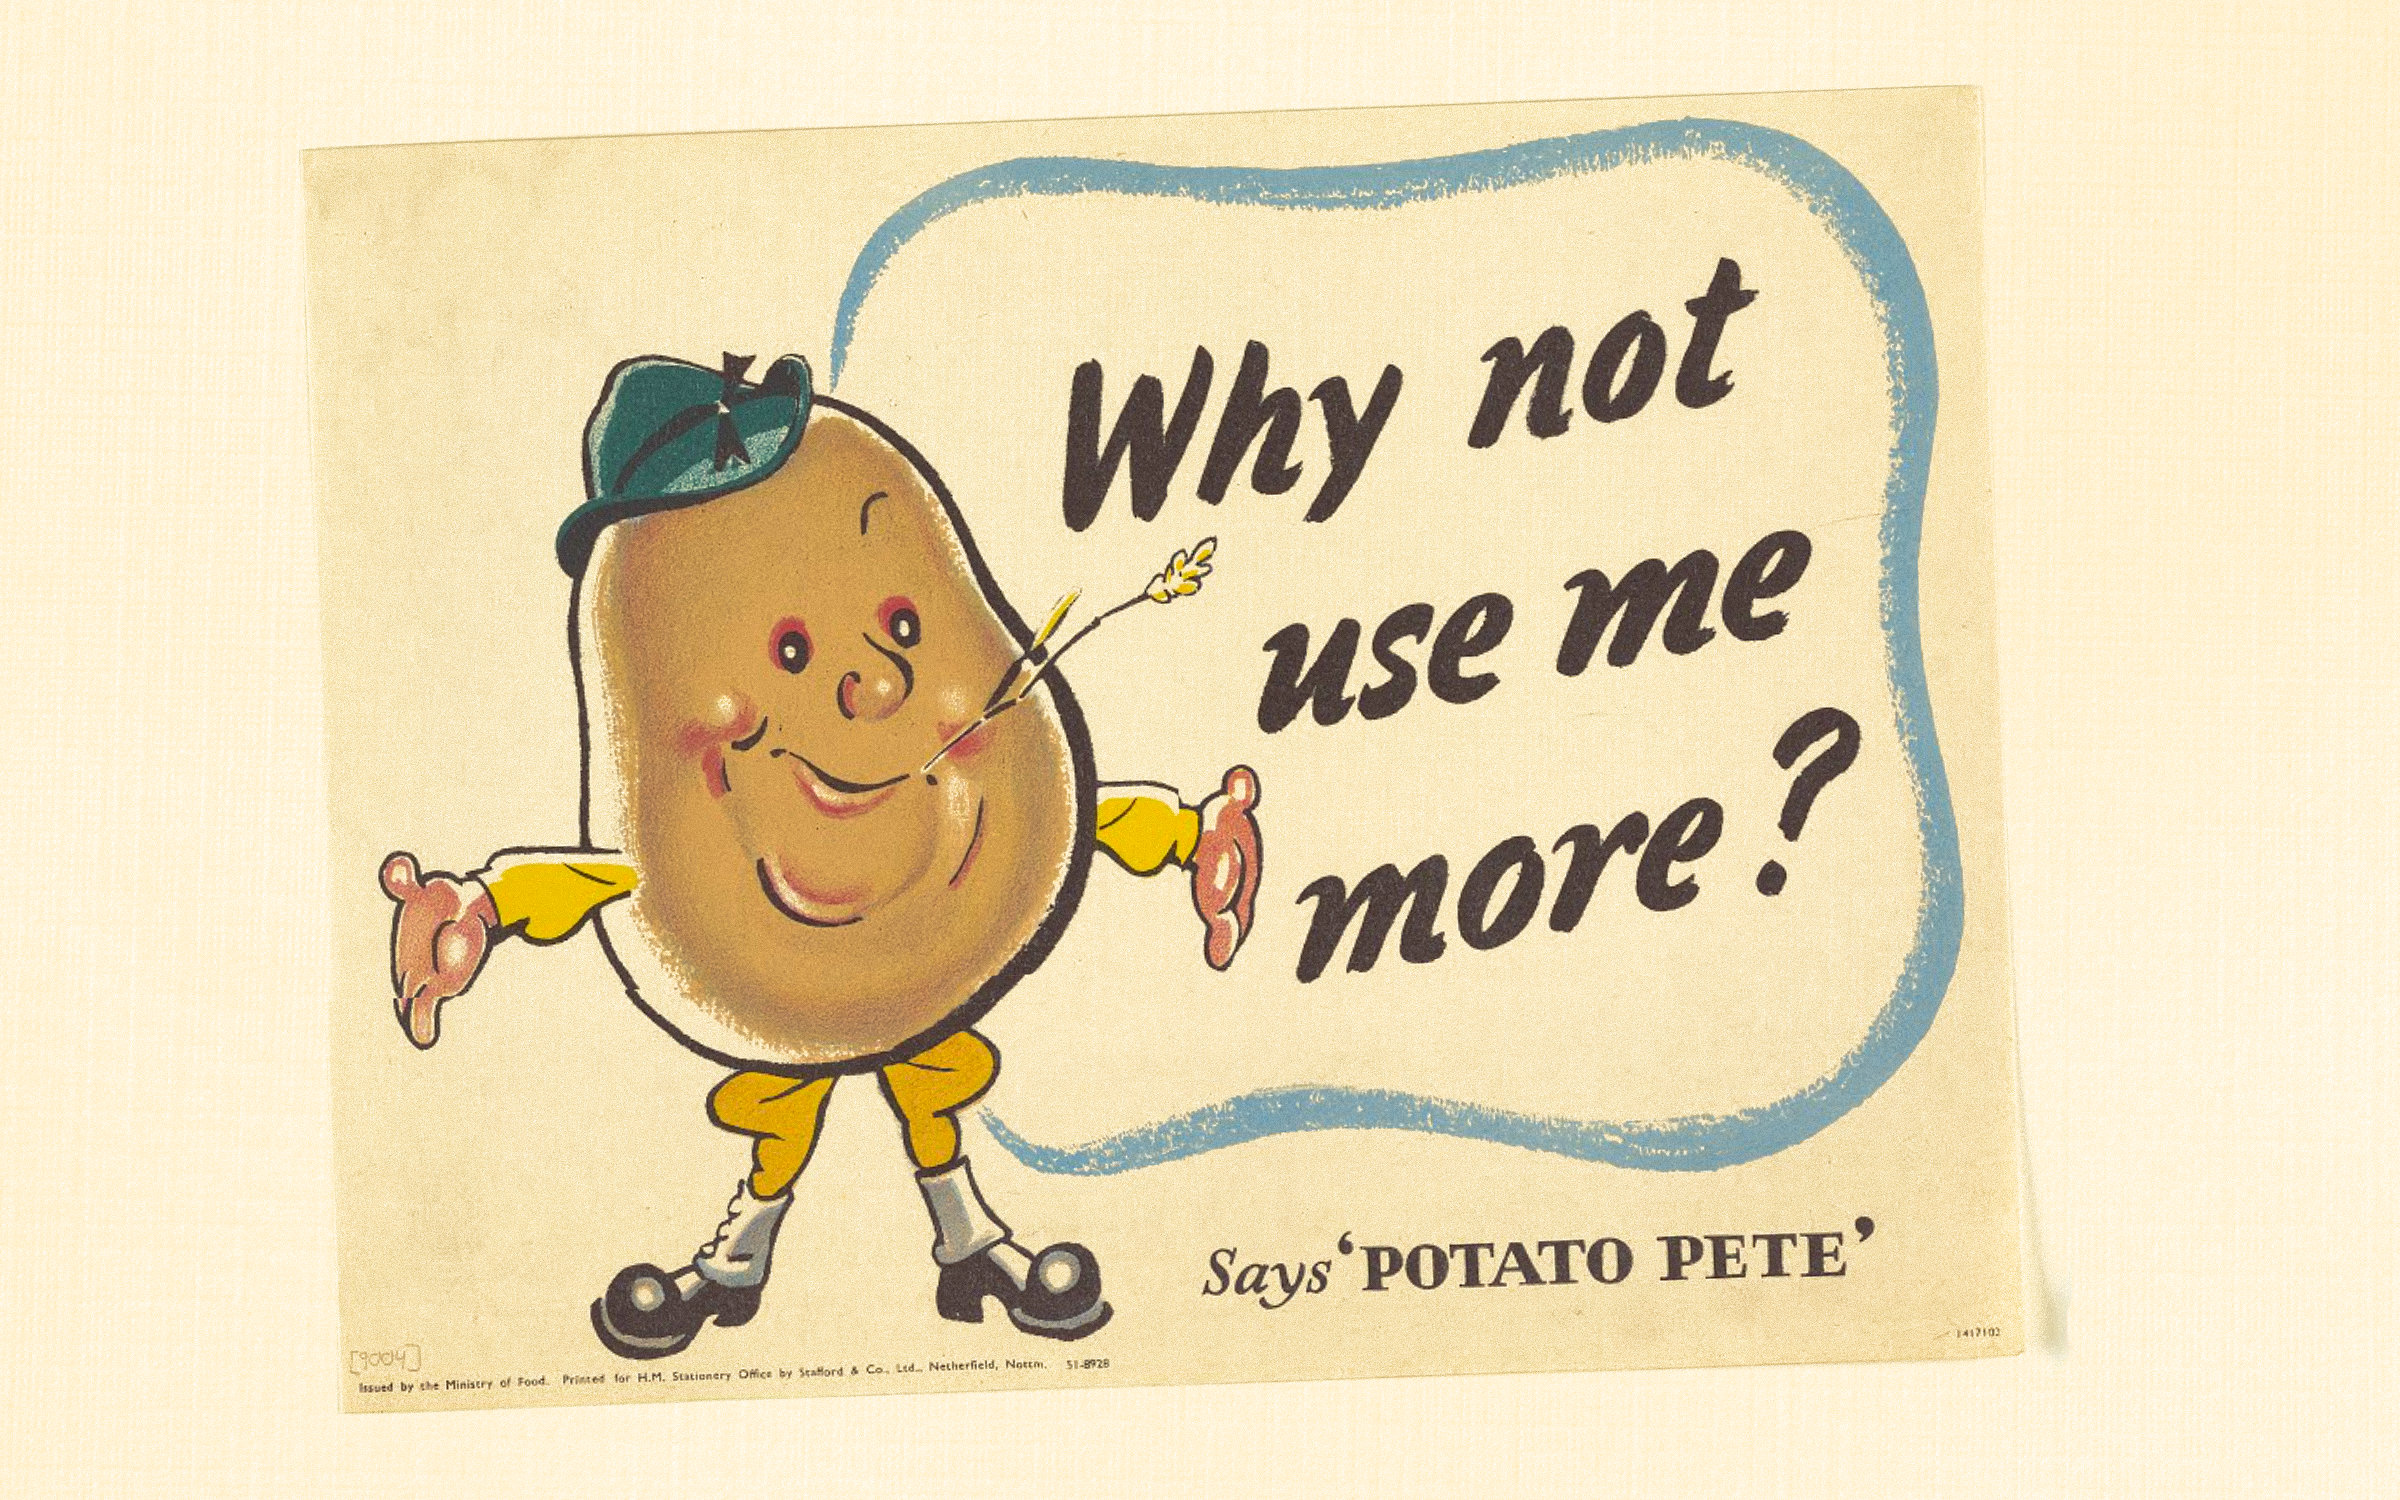 Potato Pete